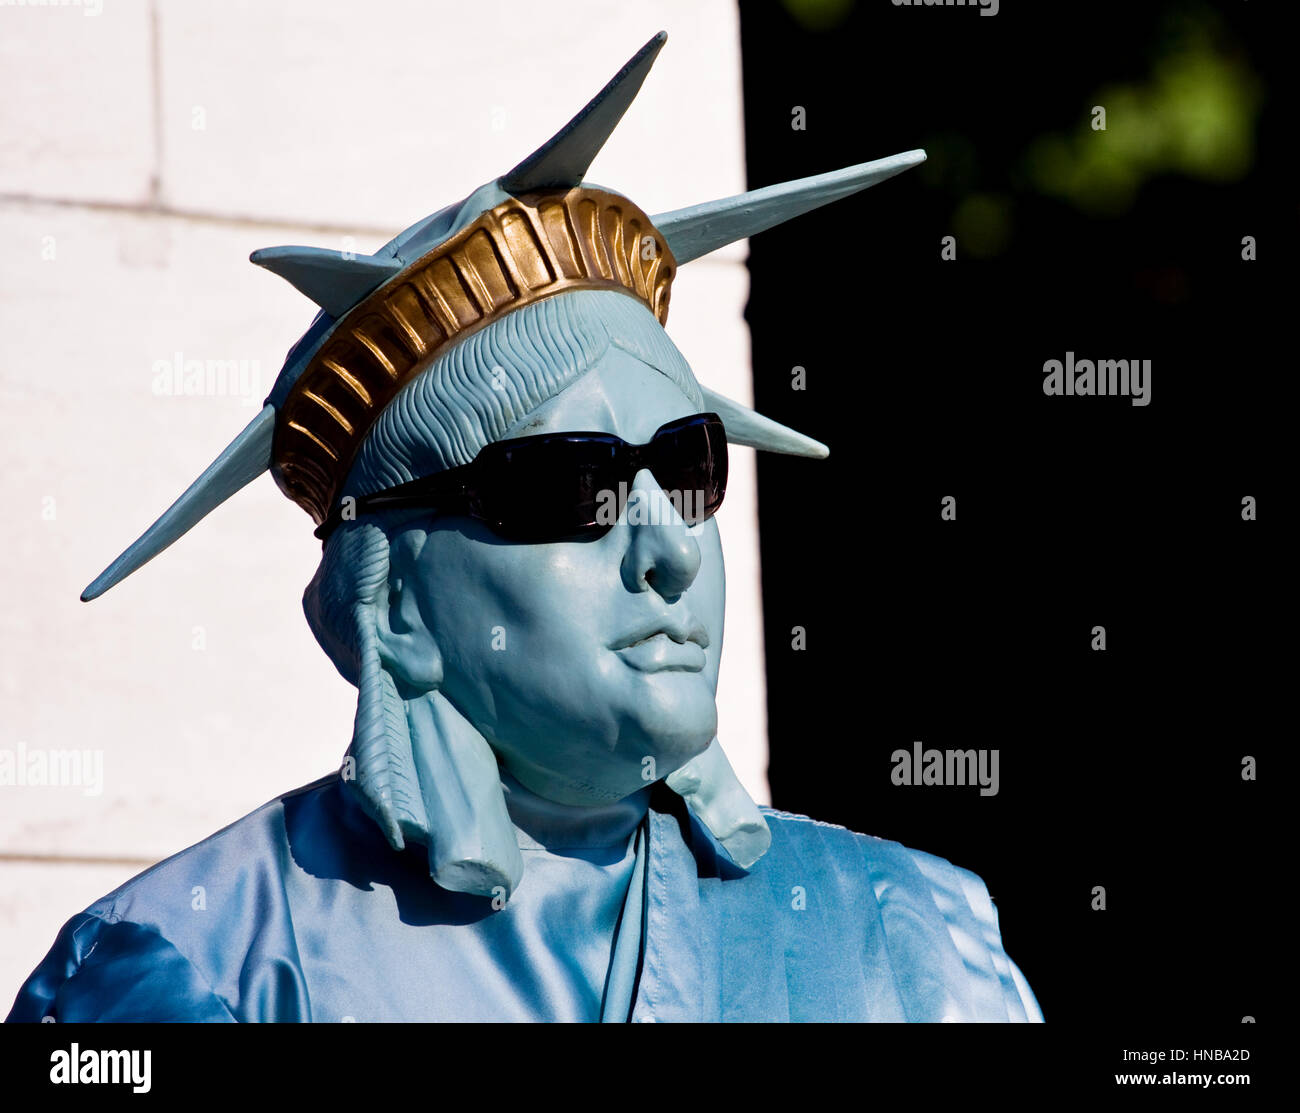 A street entertainer dressed up as the statue of liberty poses for tourists outside central Park in manhatten, New Stock Photo